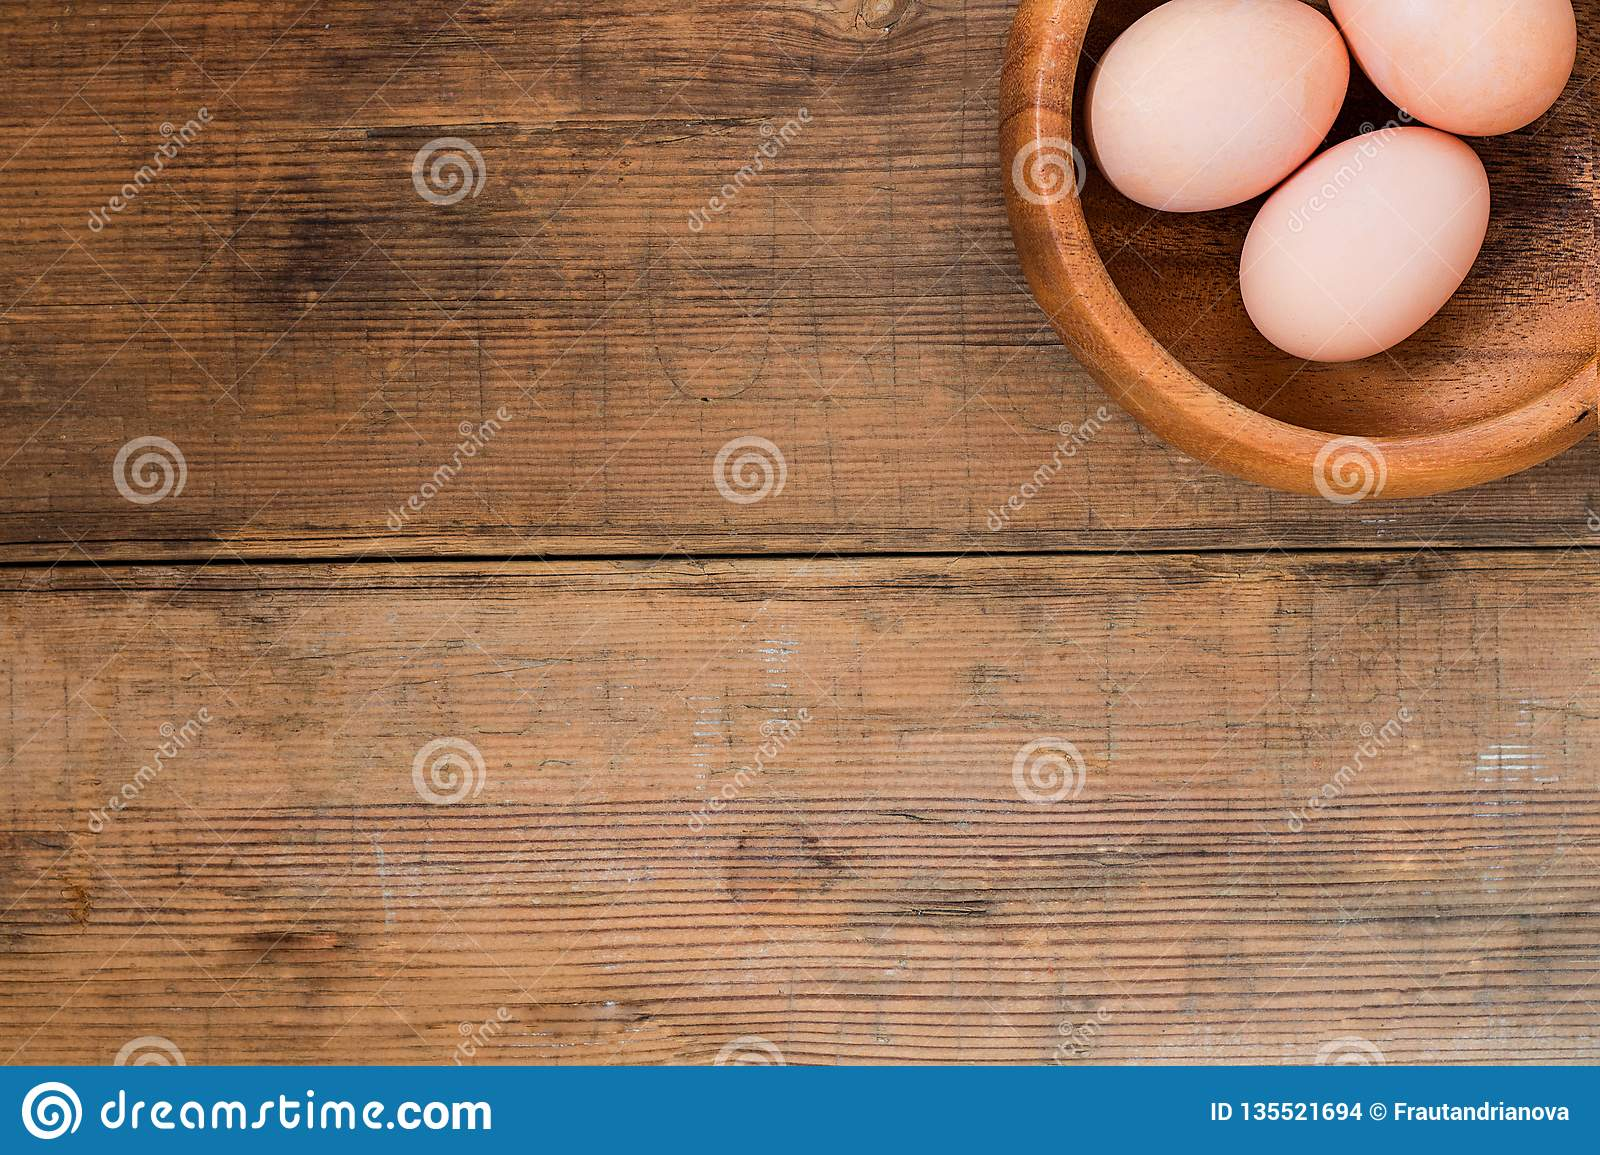 Easter Eggs In Wooden Bowl On Old Wooden Background Stock Photo